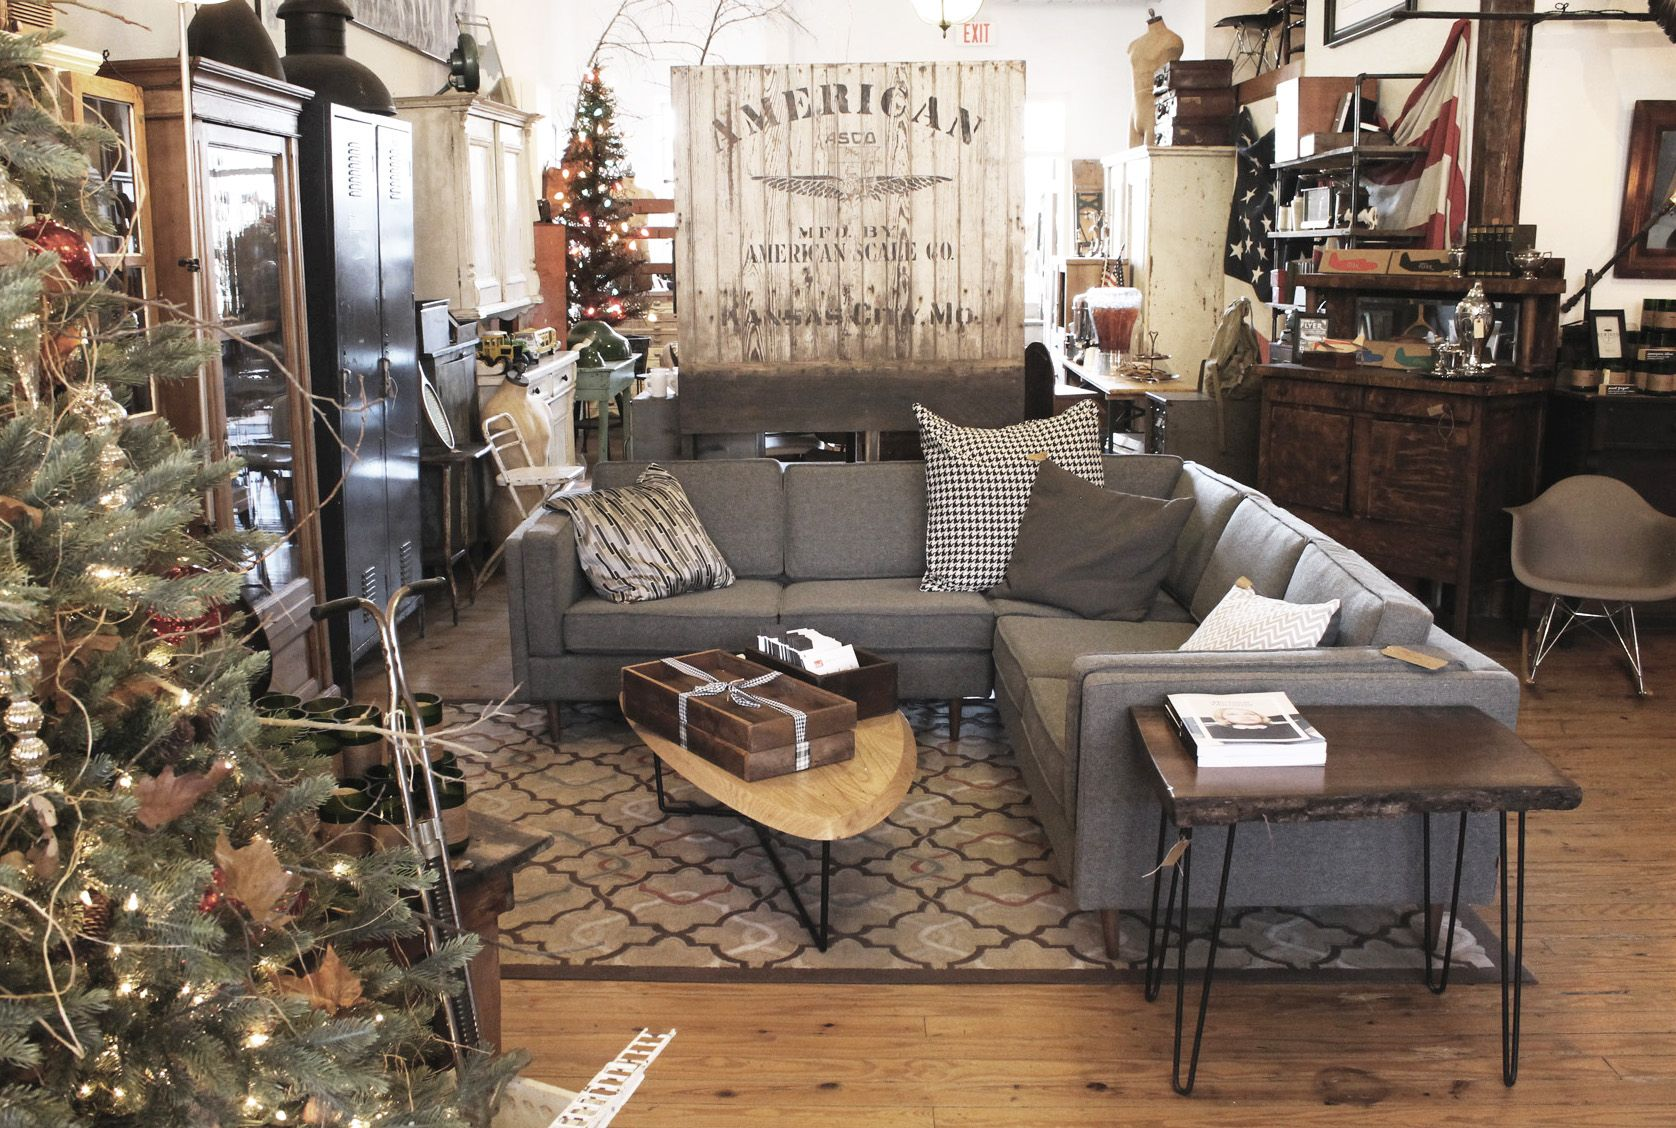 rustic furniture adelaide. A Cozy, Rustic Holiday Setup By The Talented Team At Grayson Home That Shows Off Our Adelaide Bi-Sectional And Hull Coffee Table. Furniture H